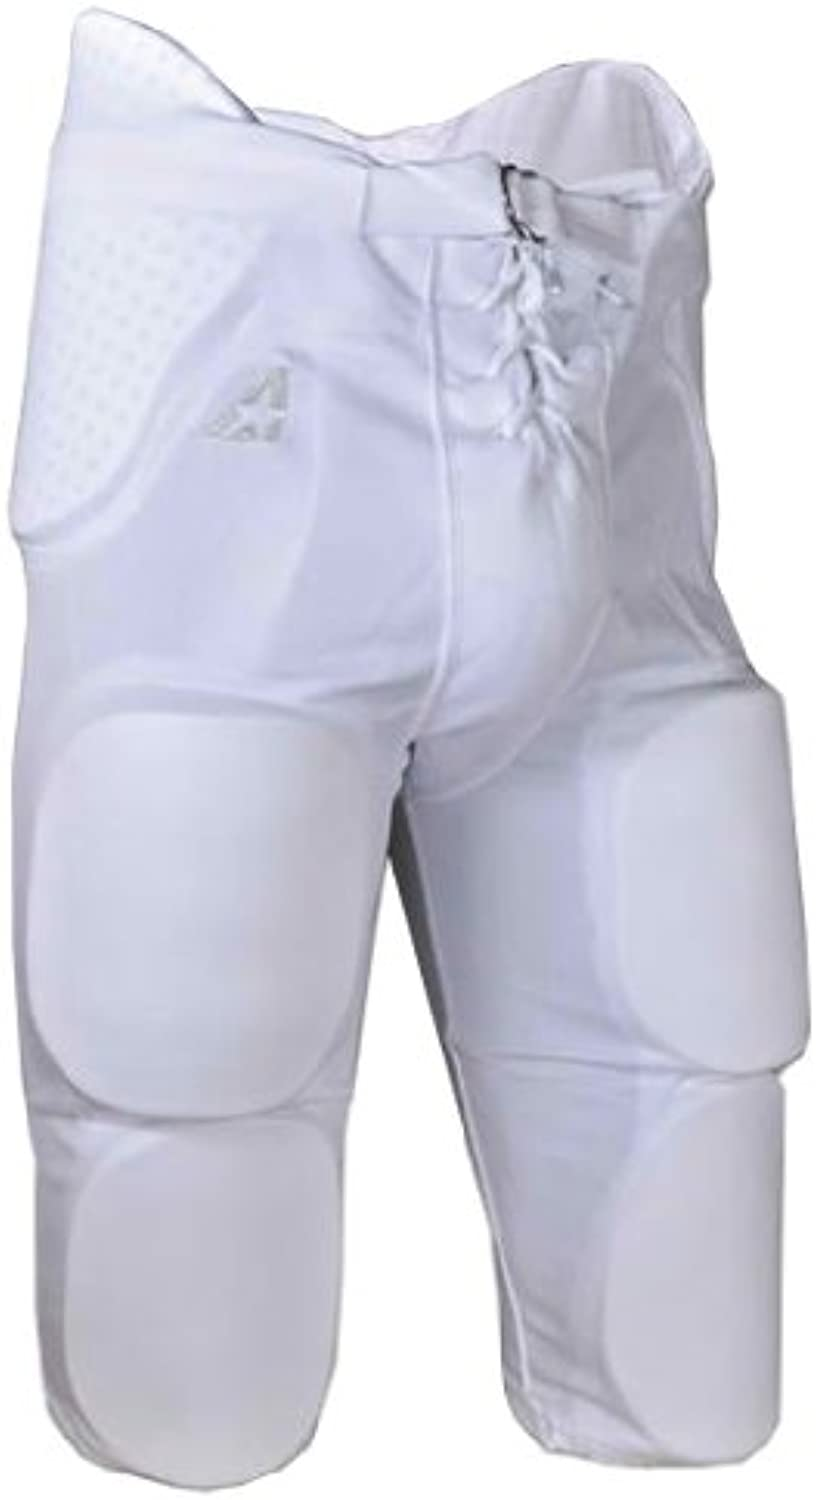 Football Youth AllinONE Pants (Sewn in Hip, Thigh, Knee Pads)